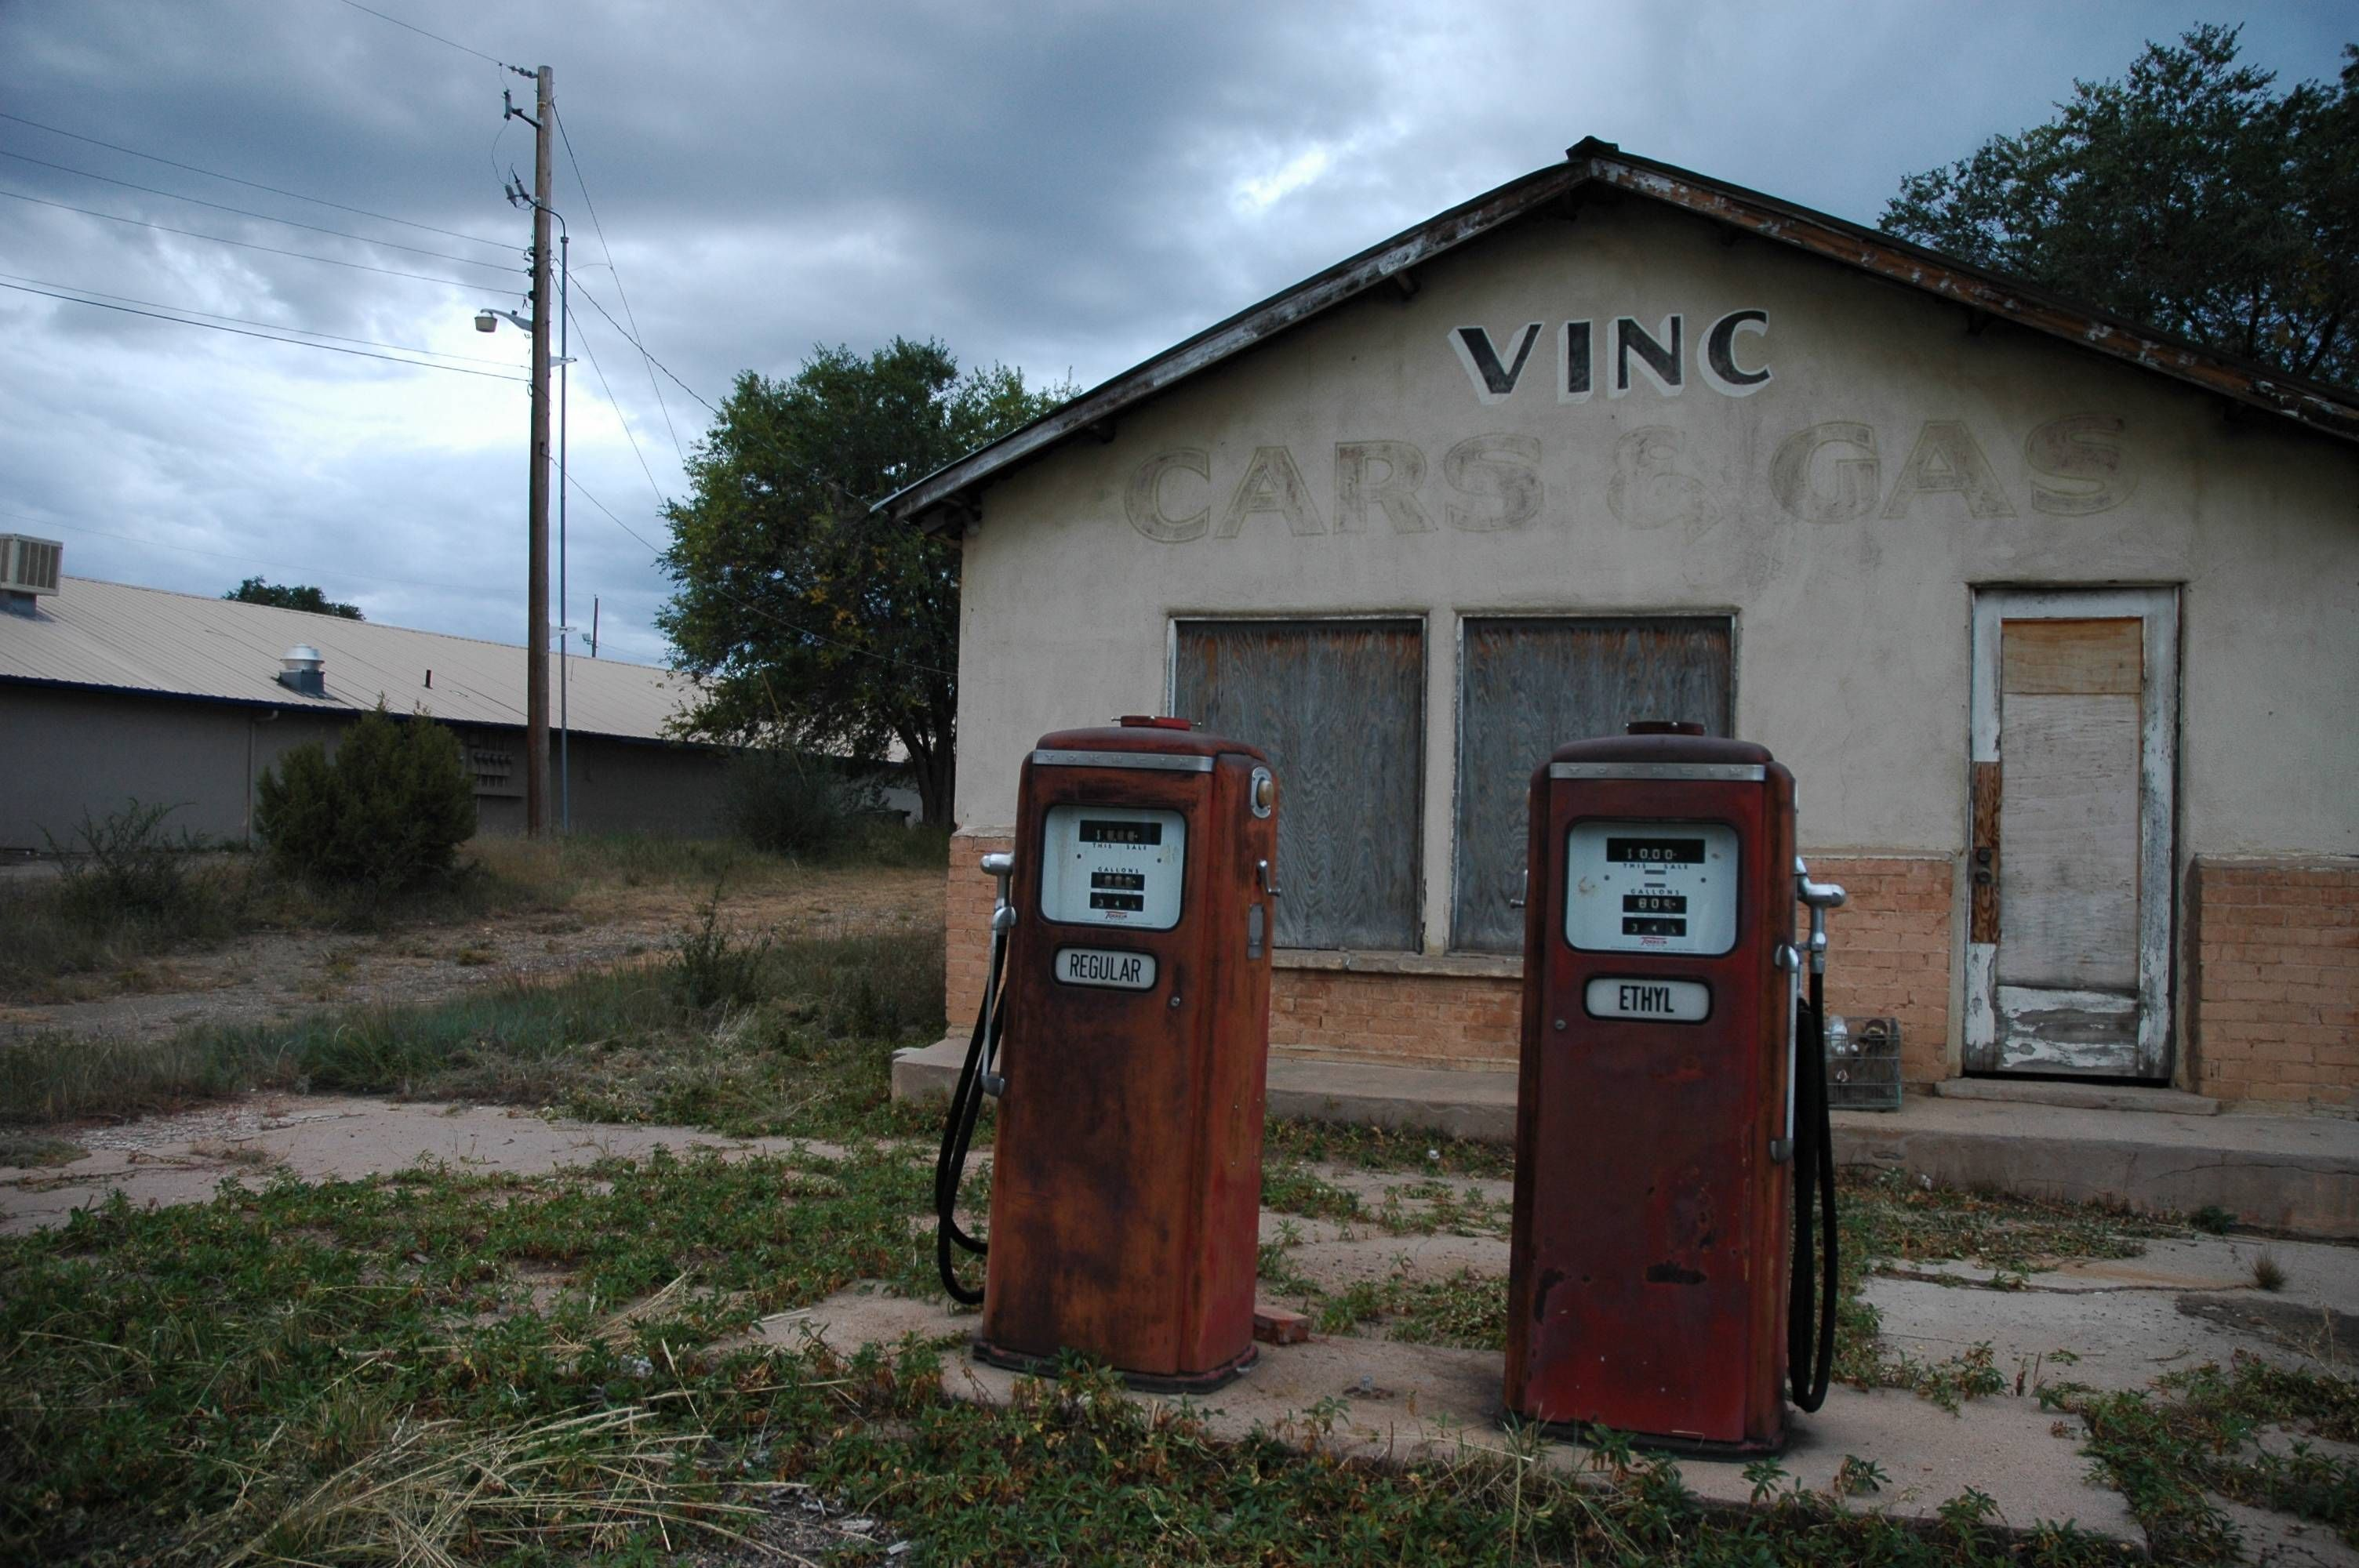 Abandoned gas station in las vegas new mexico 3008x2000